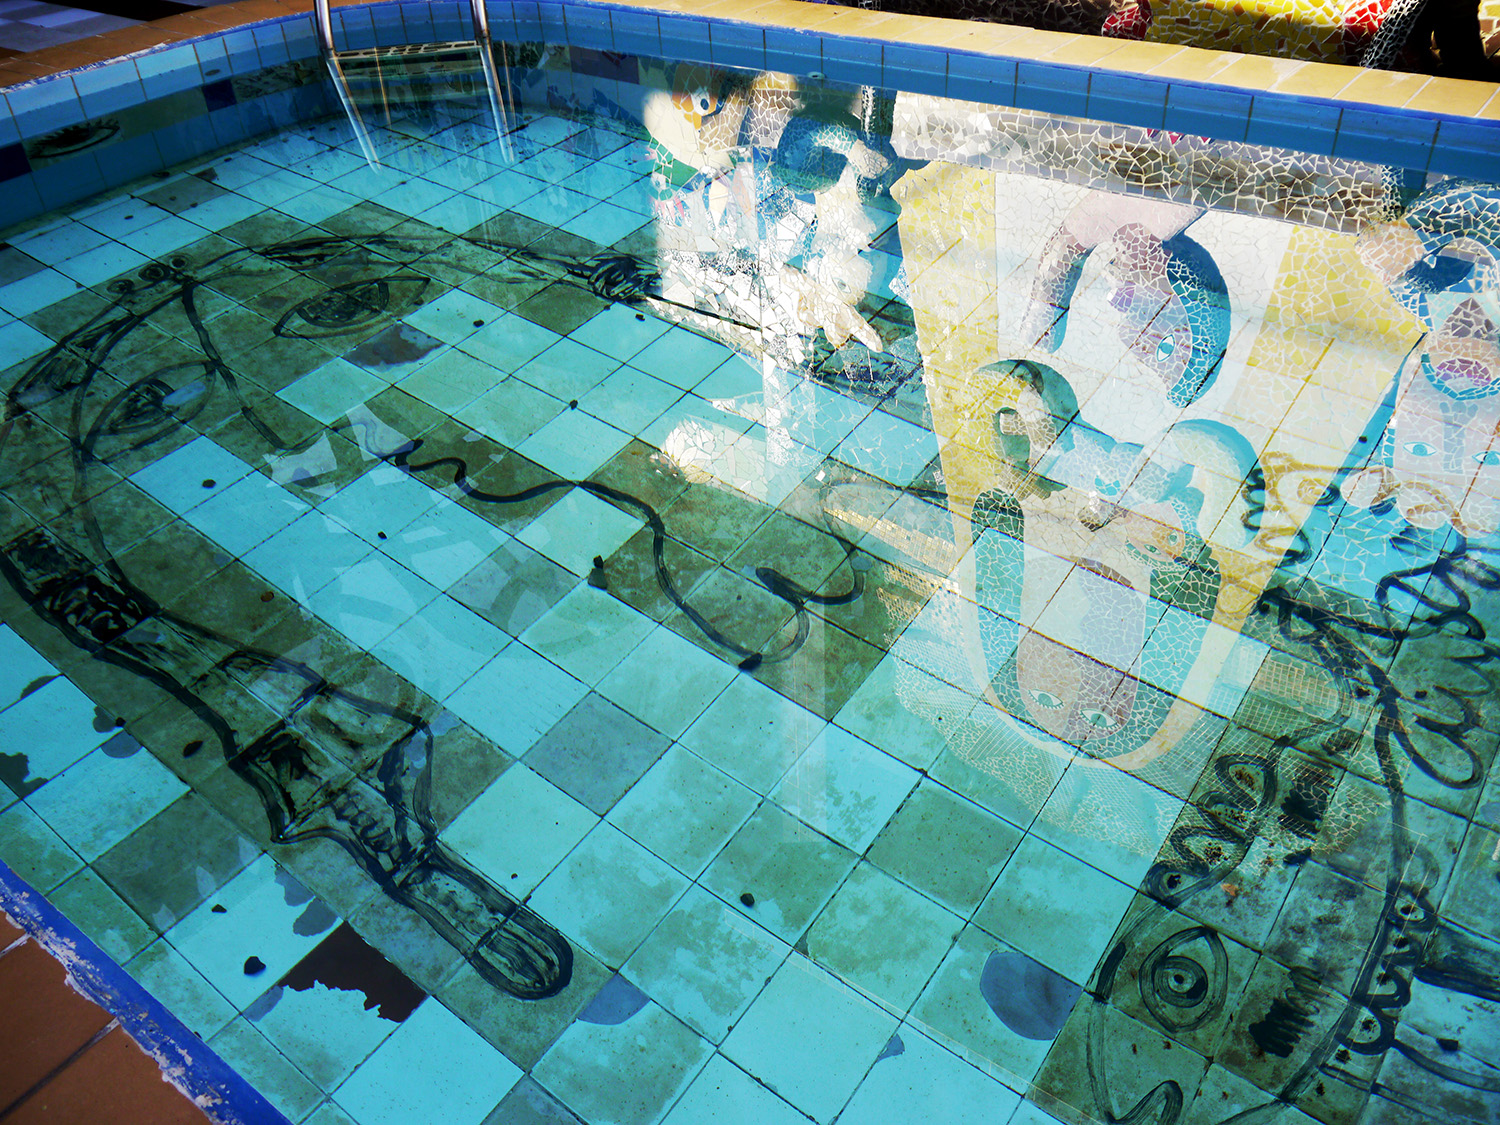 Swimming pool with art painted on the bottom.